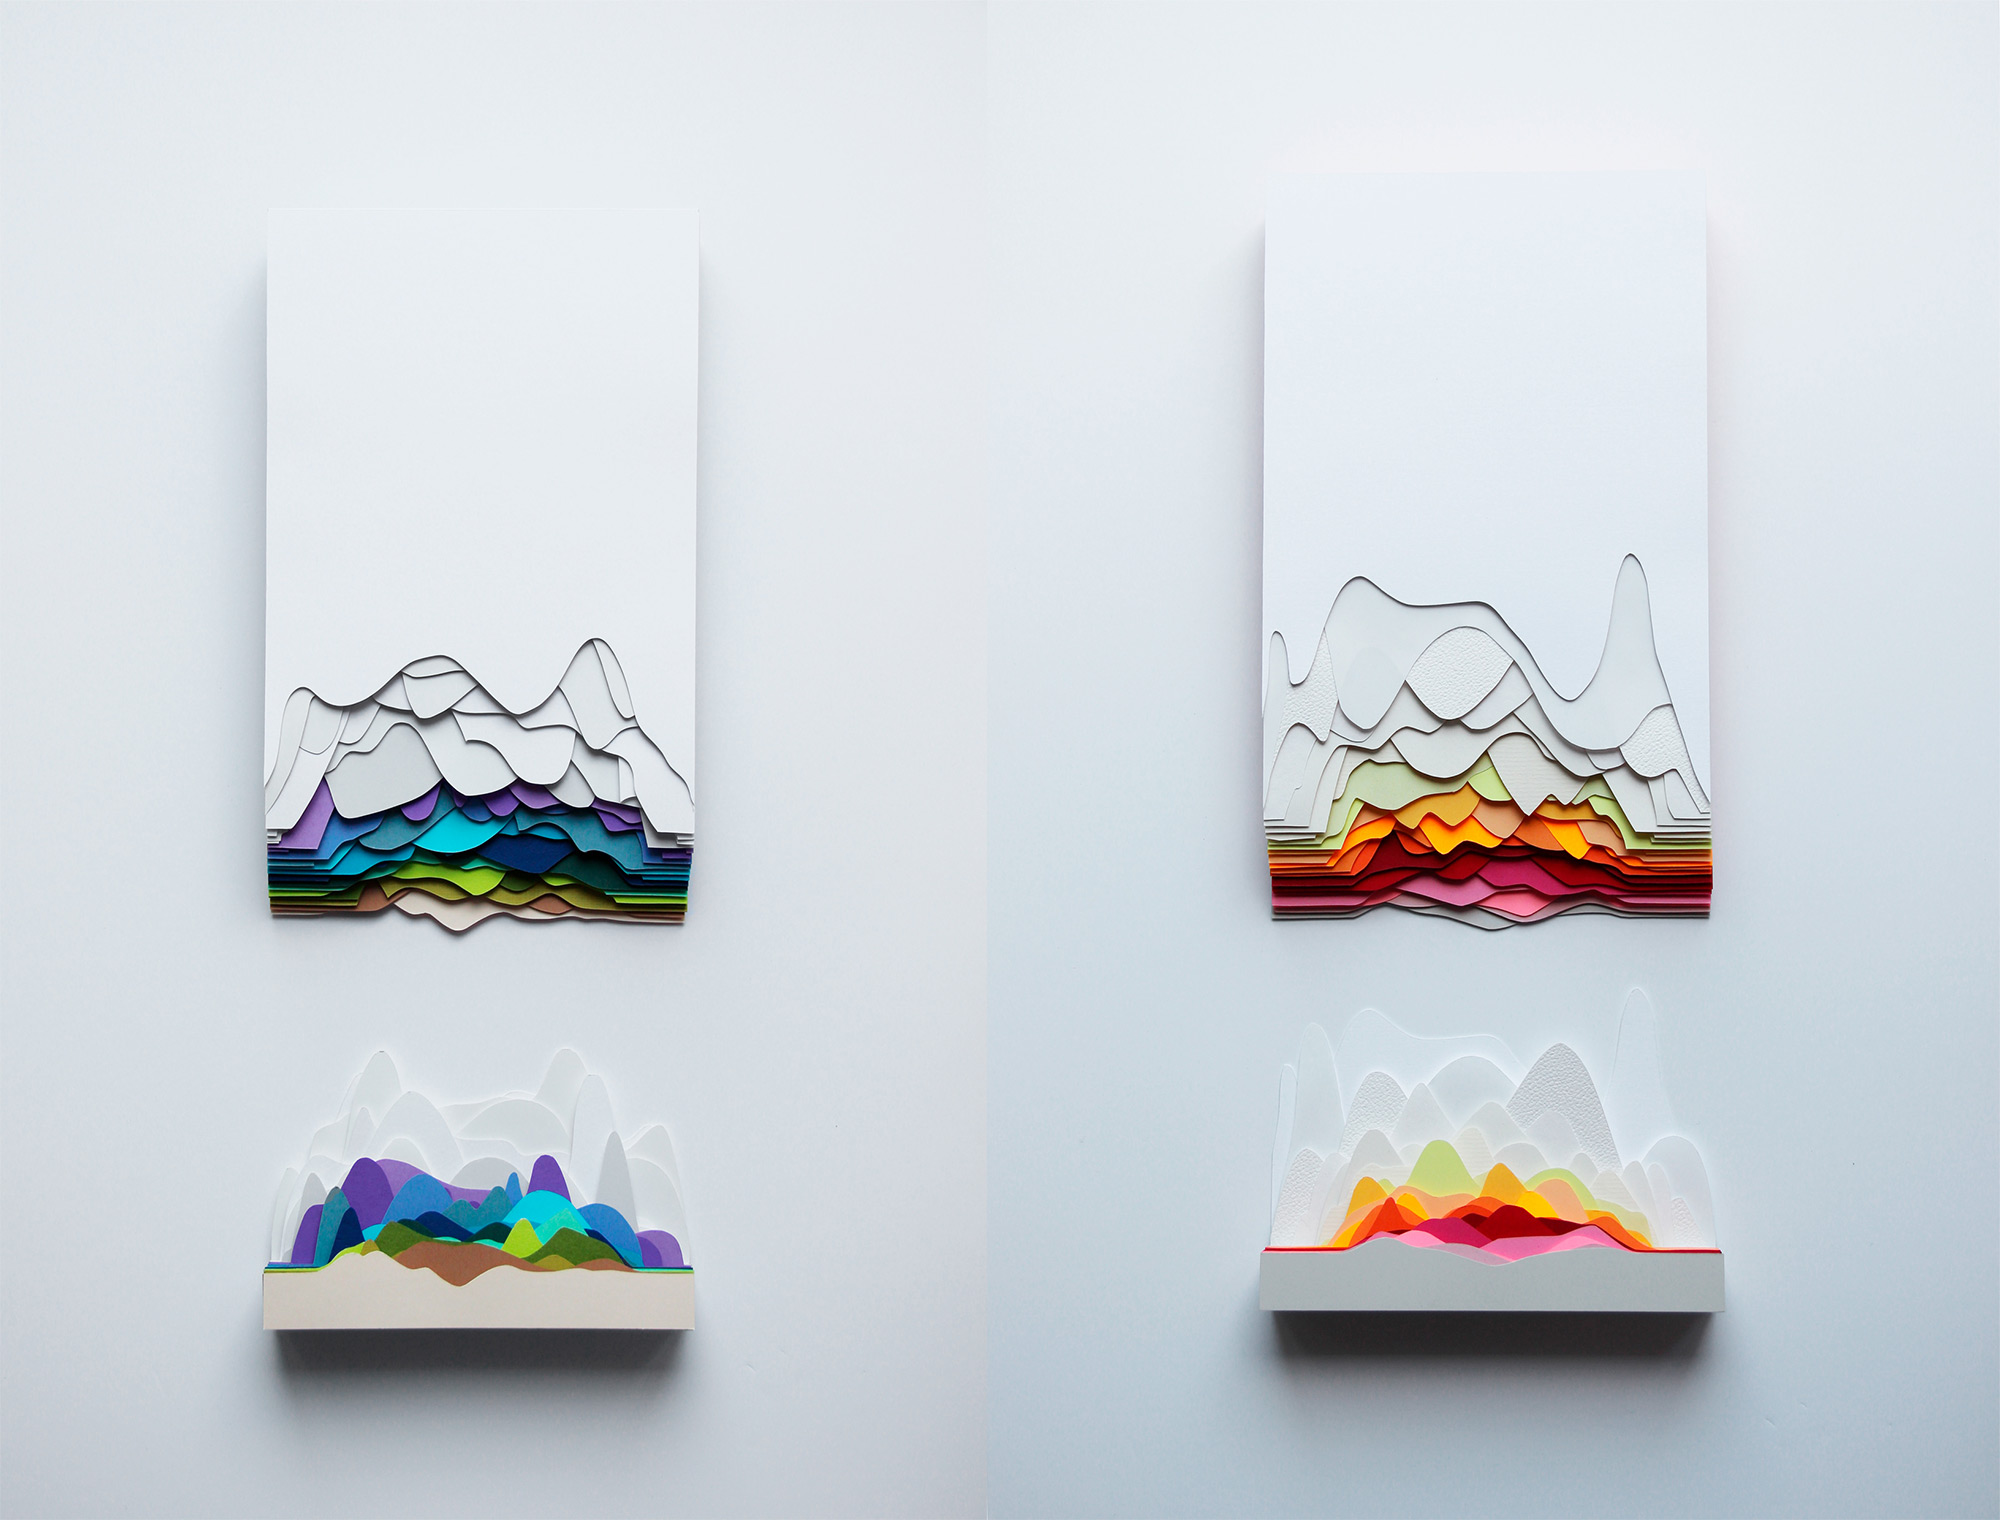 Colorful Paper Foods and Patterns by Maud Vantours